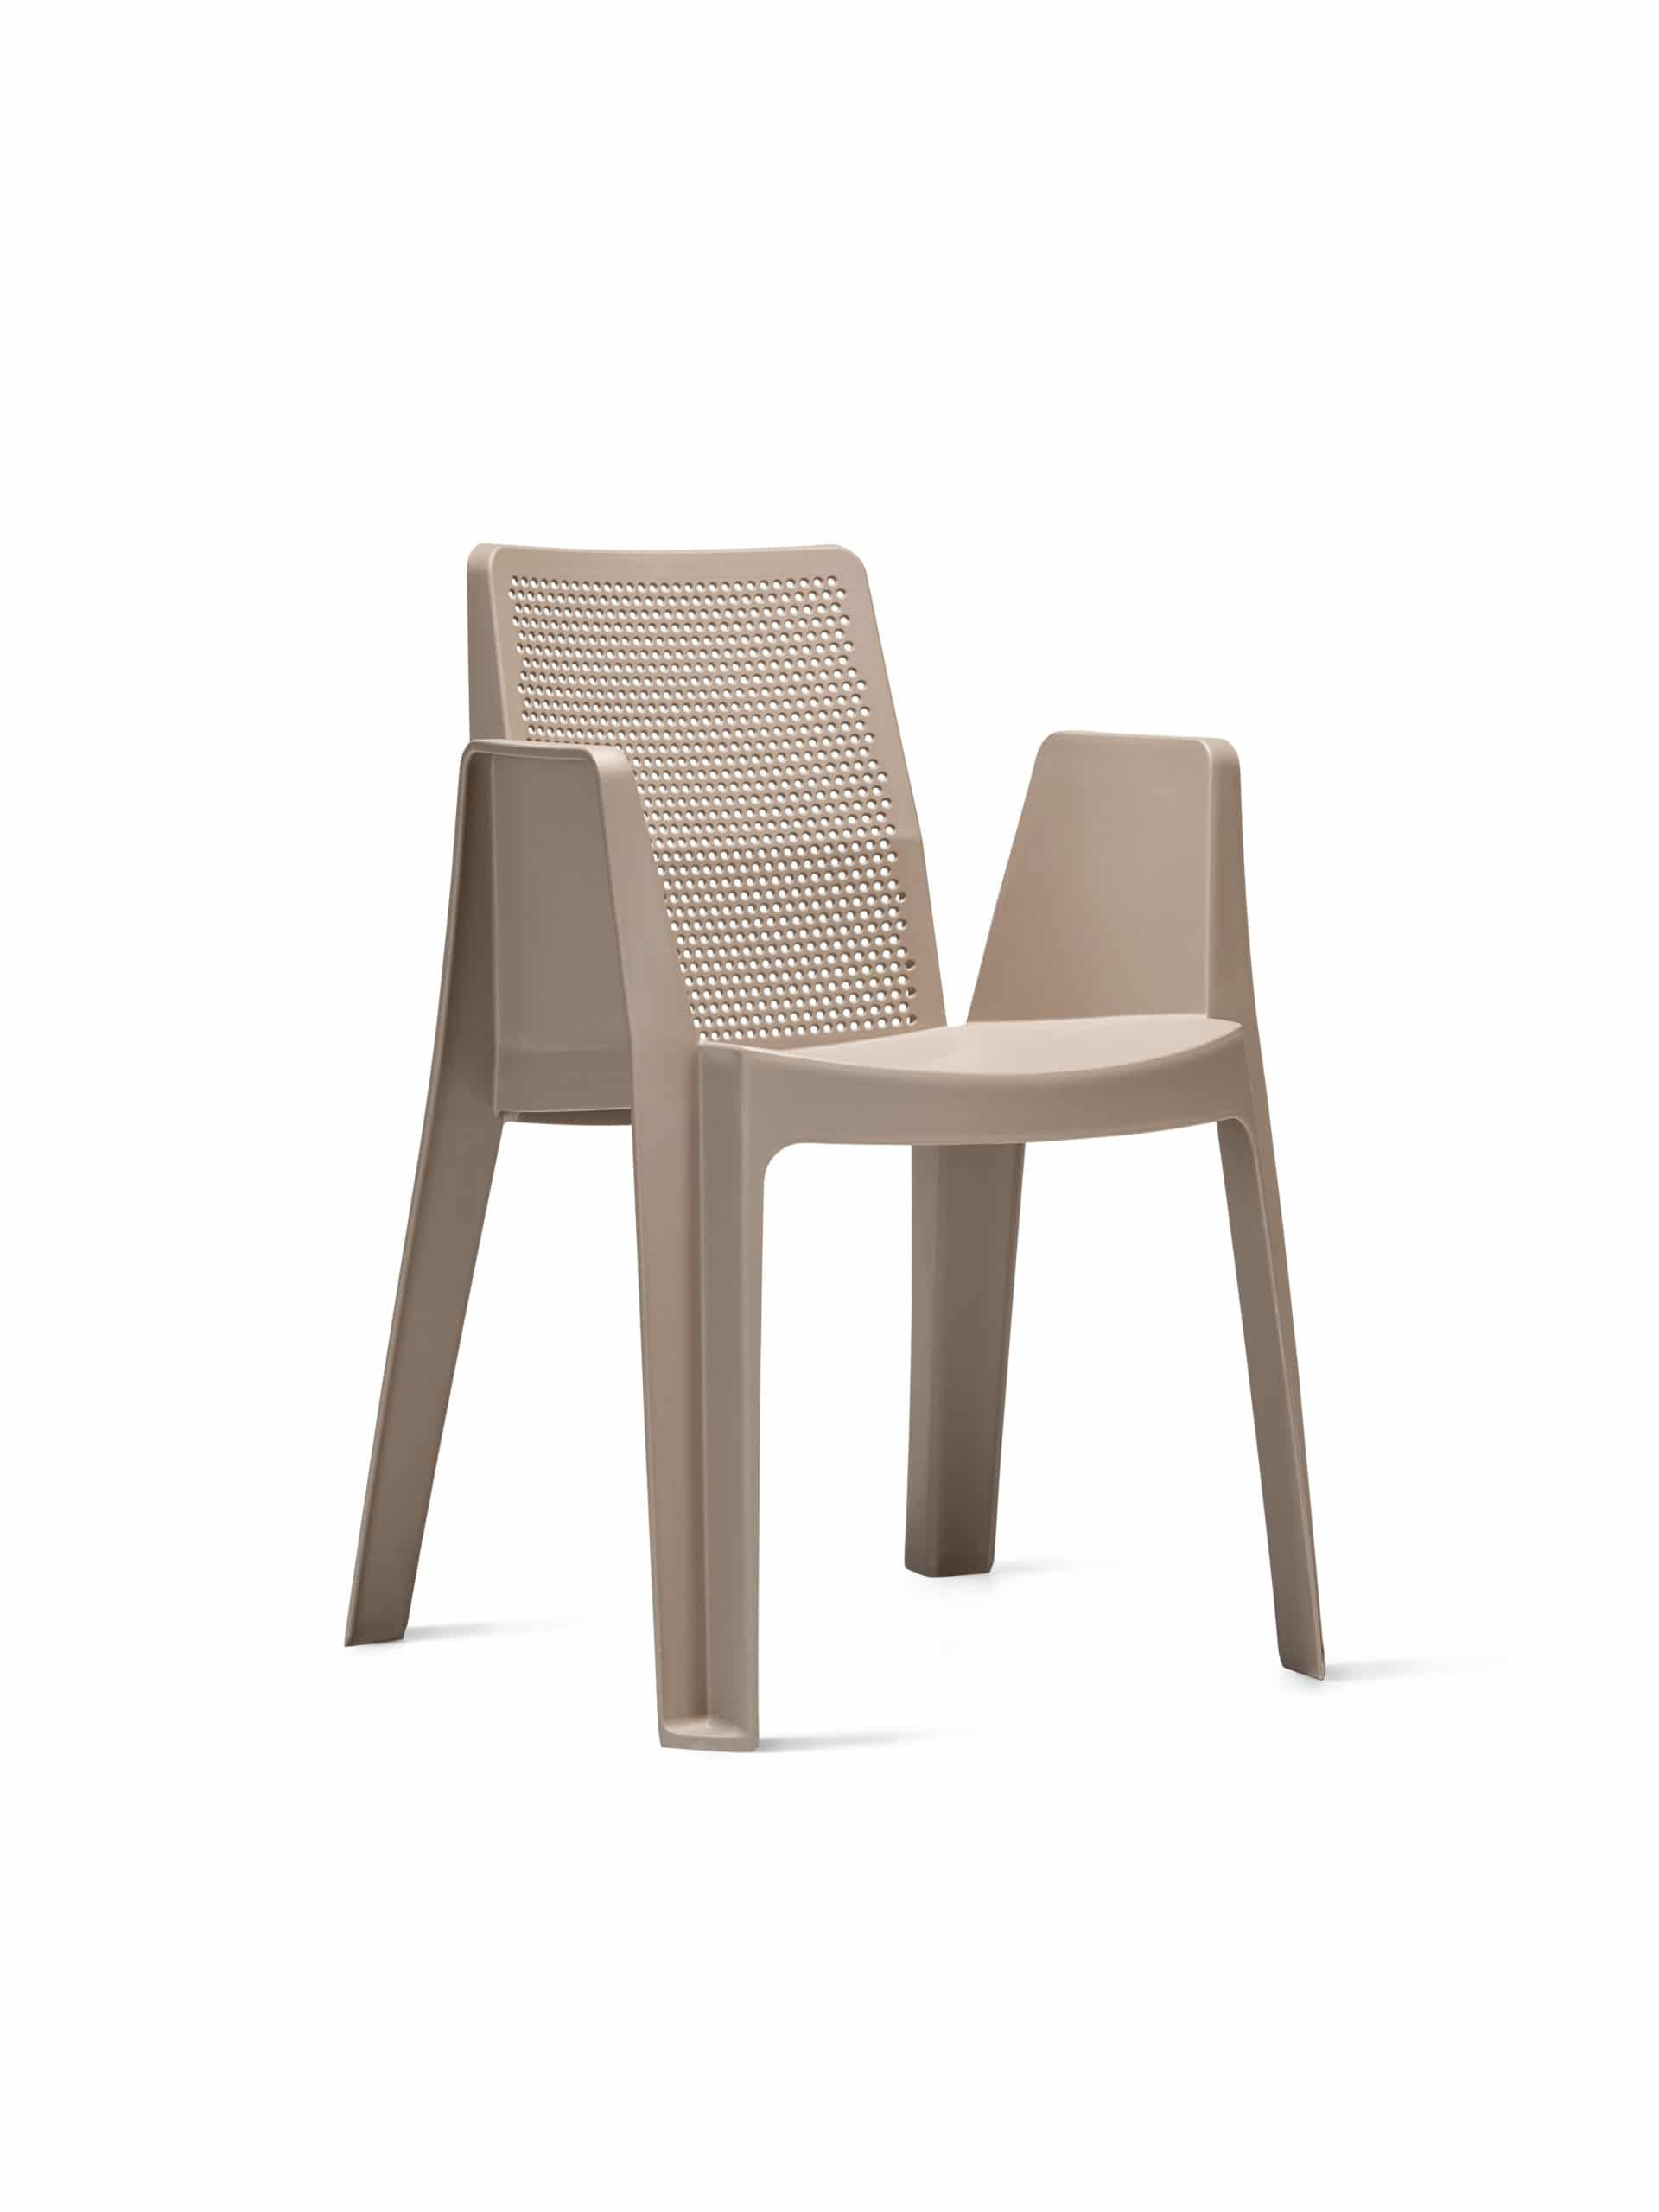 <p>Outdoor Furniture Contemporary Collection – Bexar Armchair – Sand.</p> <p> </p> <p>Armchair designed for indoor and outdoor use available in a variety of colours, stackable, inspired by modern Bauhaus architecture, capturing essential features such as lightness, stability, functionality, ergonomics and care for the environment. Adaptable to a variety of hospitality environments</p>